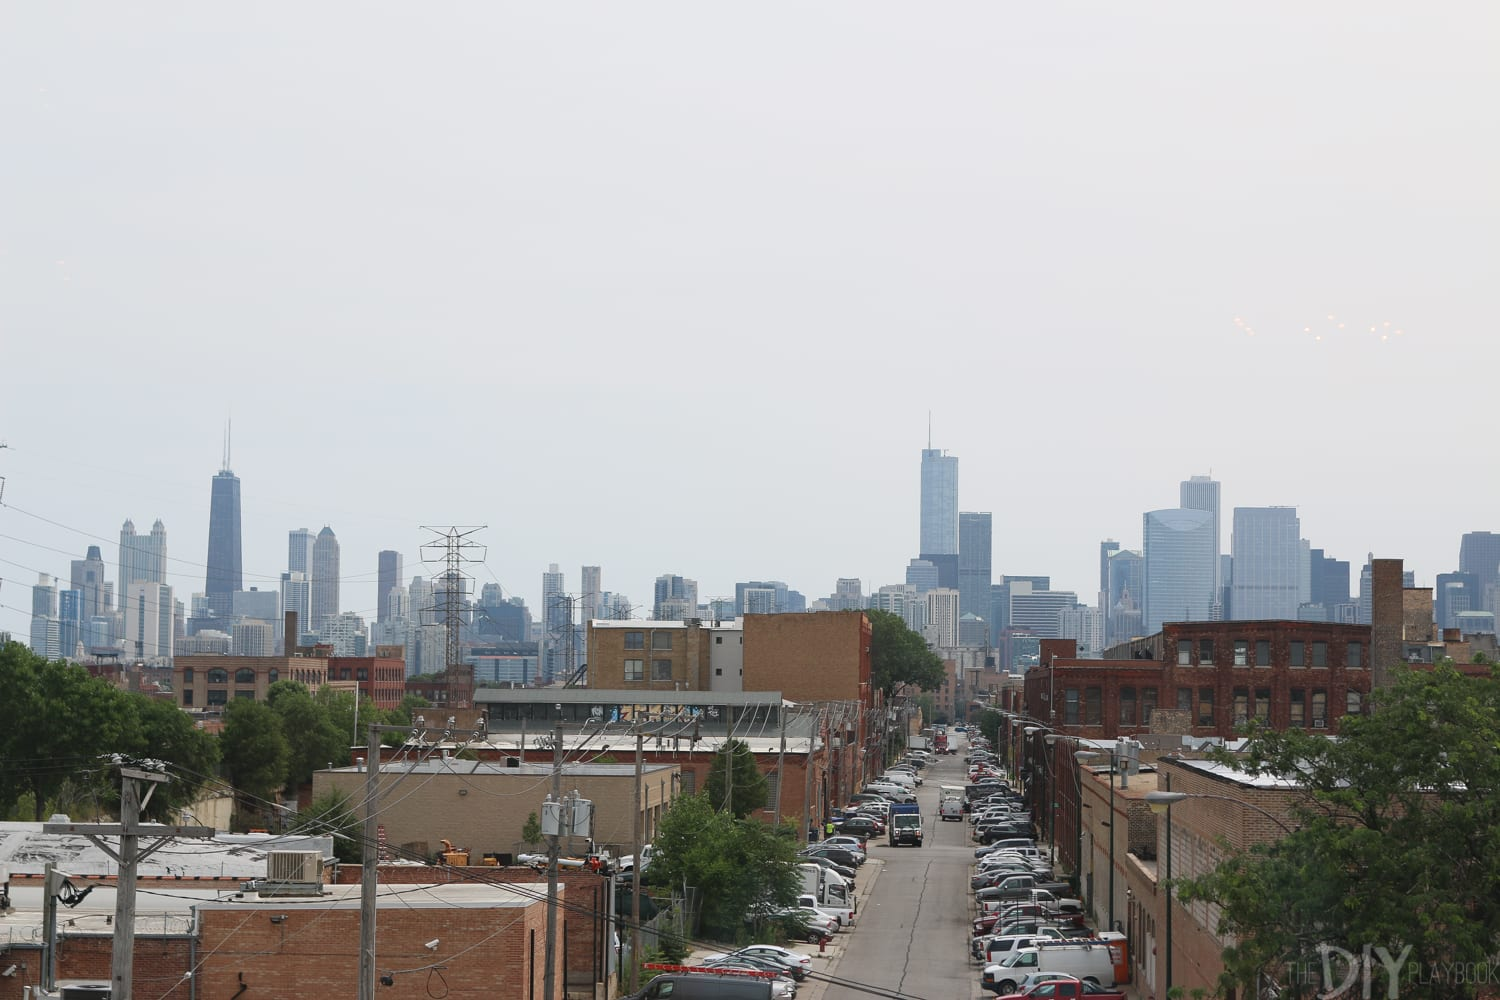 View of the Chicago skyline from Bloom Bash.